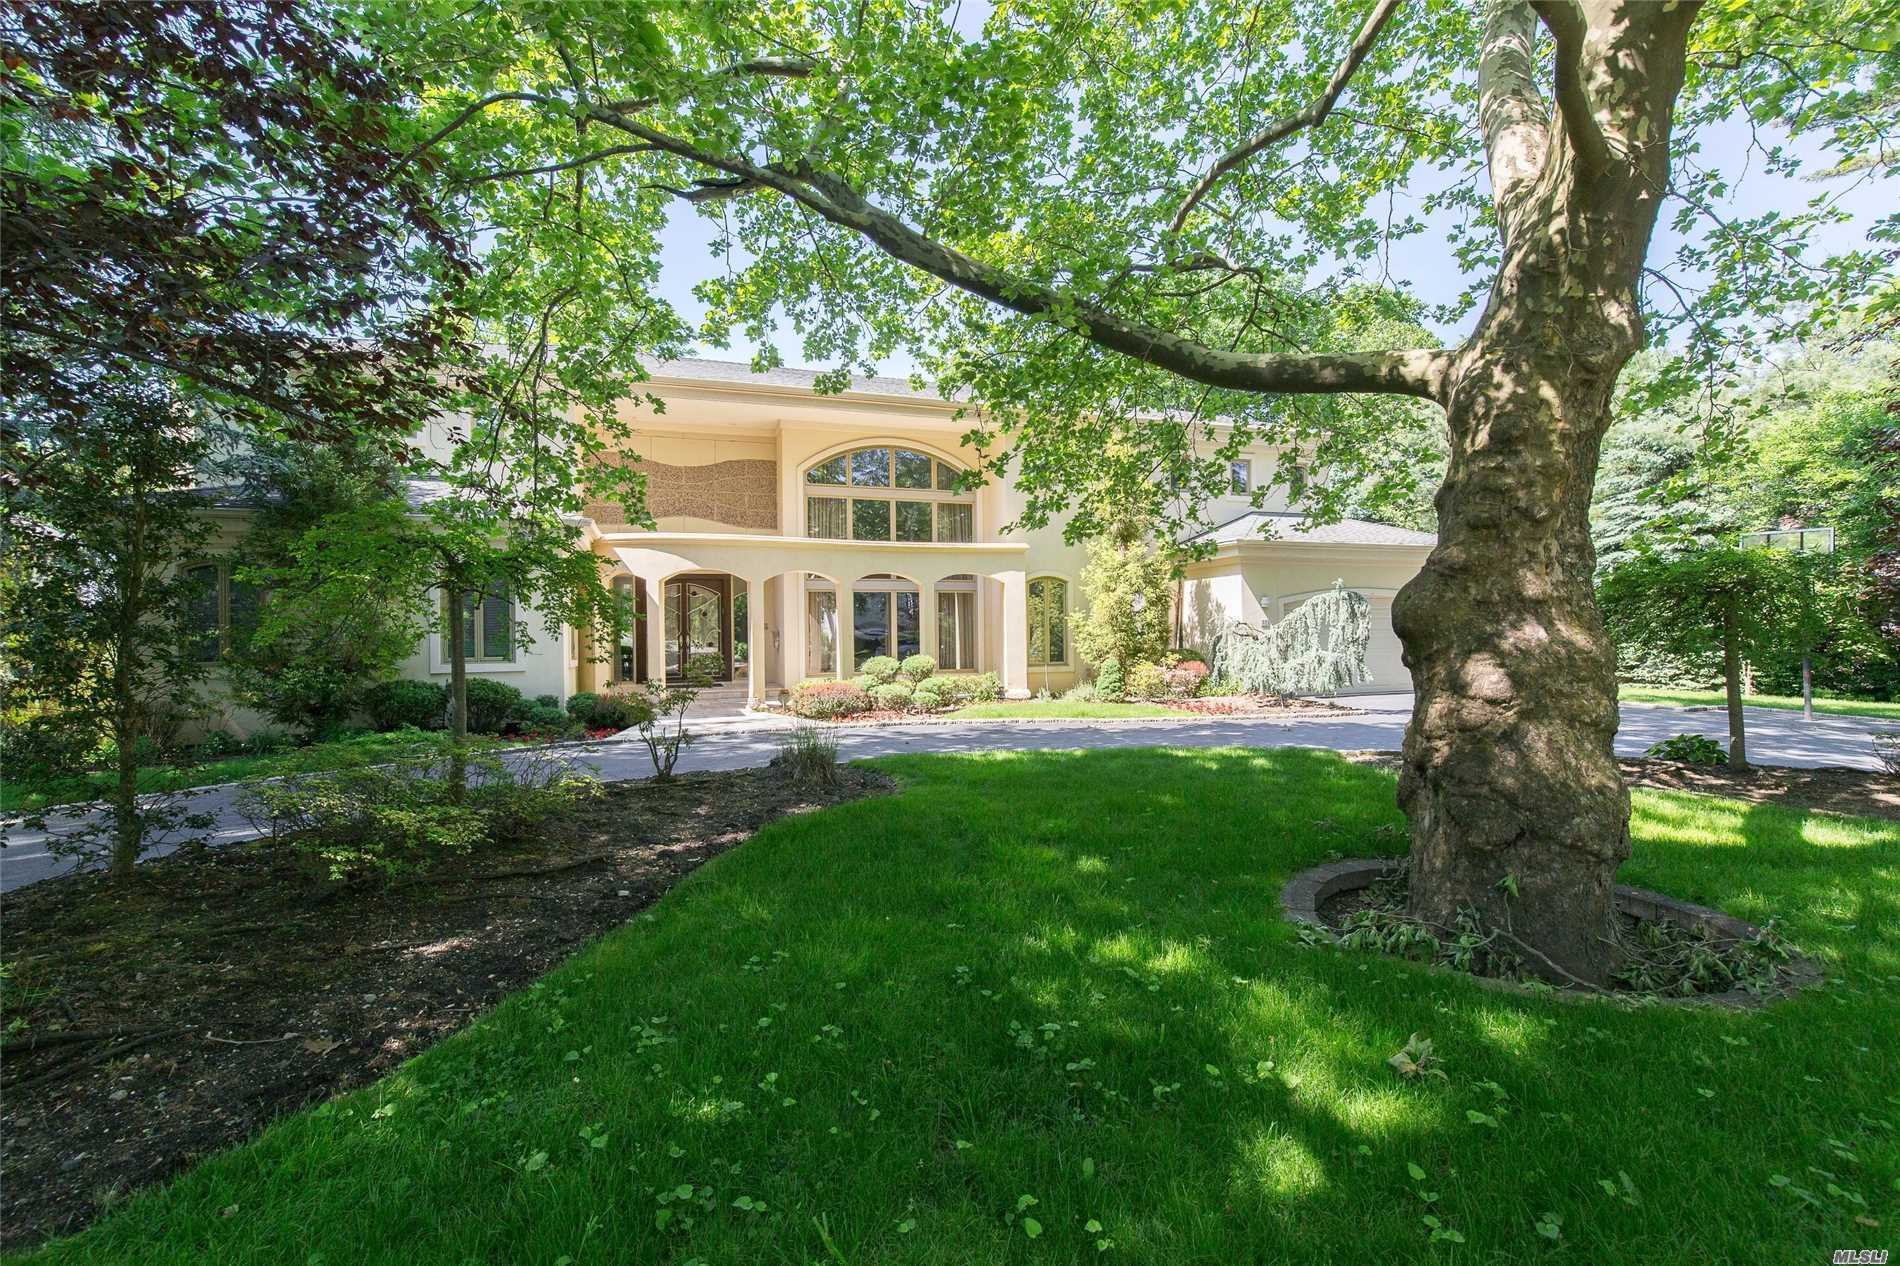 Magestic Custom Built Contemp W/Soaring Double Height Entry, Floor To Ceiling Windows Welcome You To This Dramatic Sunlit Home. The Open Floor Plan Features Large Lr, Dr + Family Rm, State-Of-The Art Kit Opens Onto A Stone Veranda Overlooking 1/2+ Acre Of Lush Manicured Gardens. This Home Boasts A Heavenly Master Suite + Bth And 7 Add. Family Bdrms, 4.55 Baths.A Walk Out Bsmnt, Radiant Heat Thru Out. All In The Village Of Lake Success W/Private Police, Golf, Pool And Tennis.